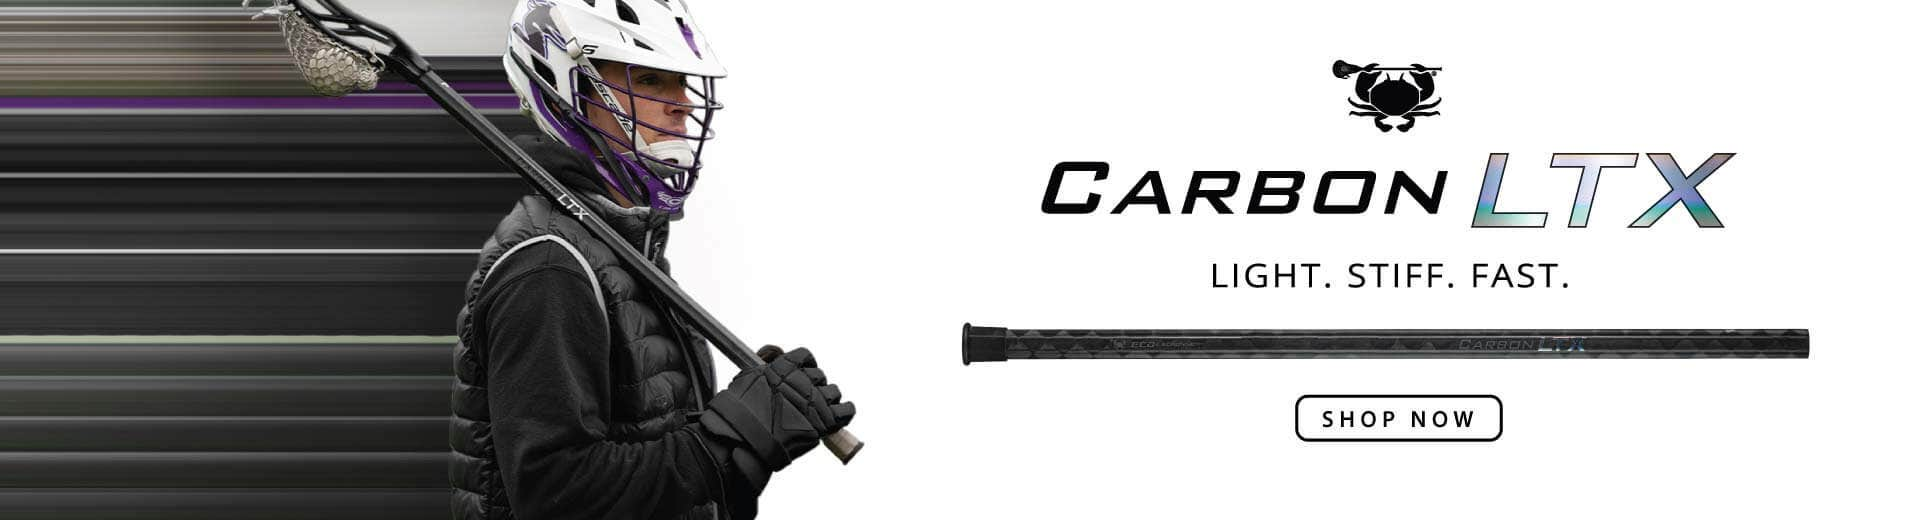 ECD Carbon LTX Lacrosse Shaft - DESKTOP